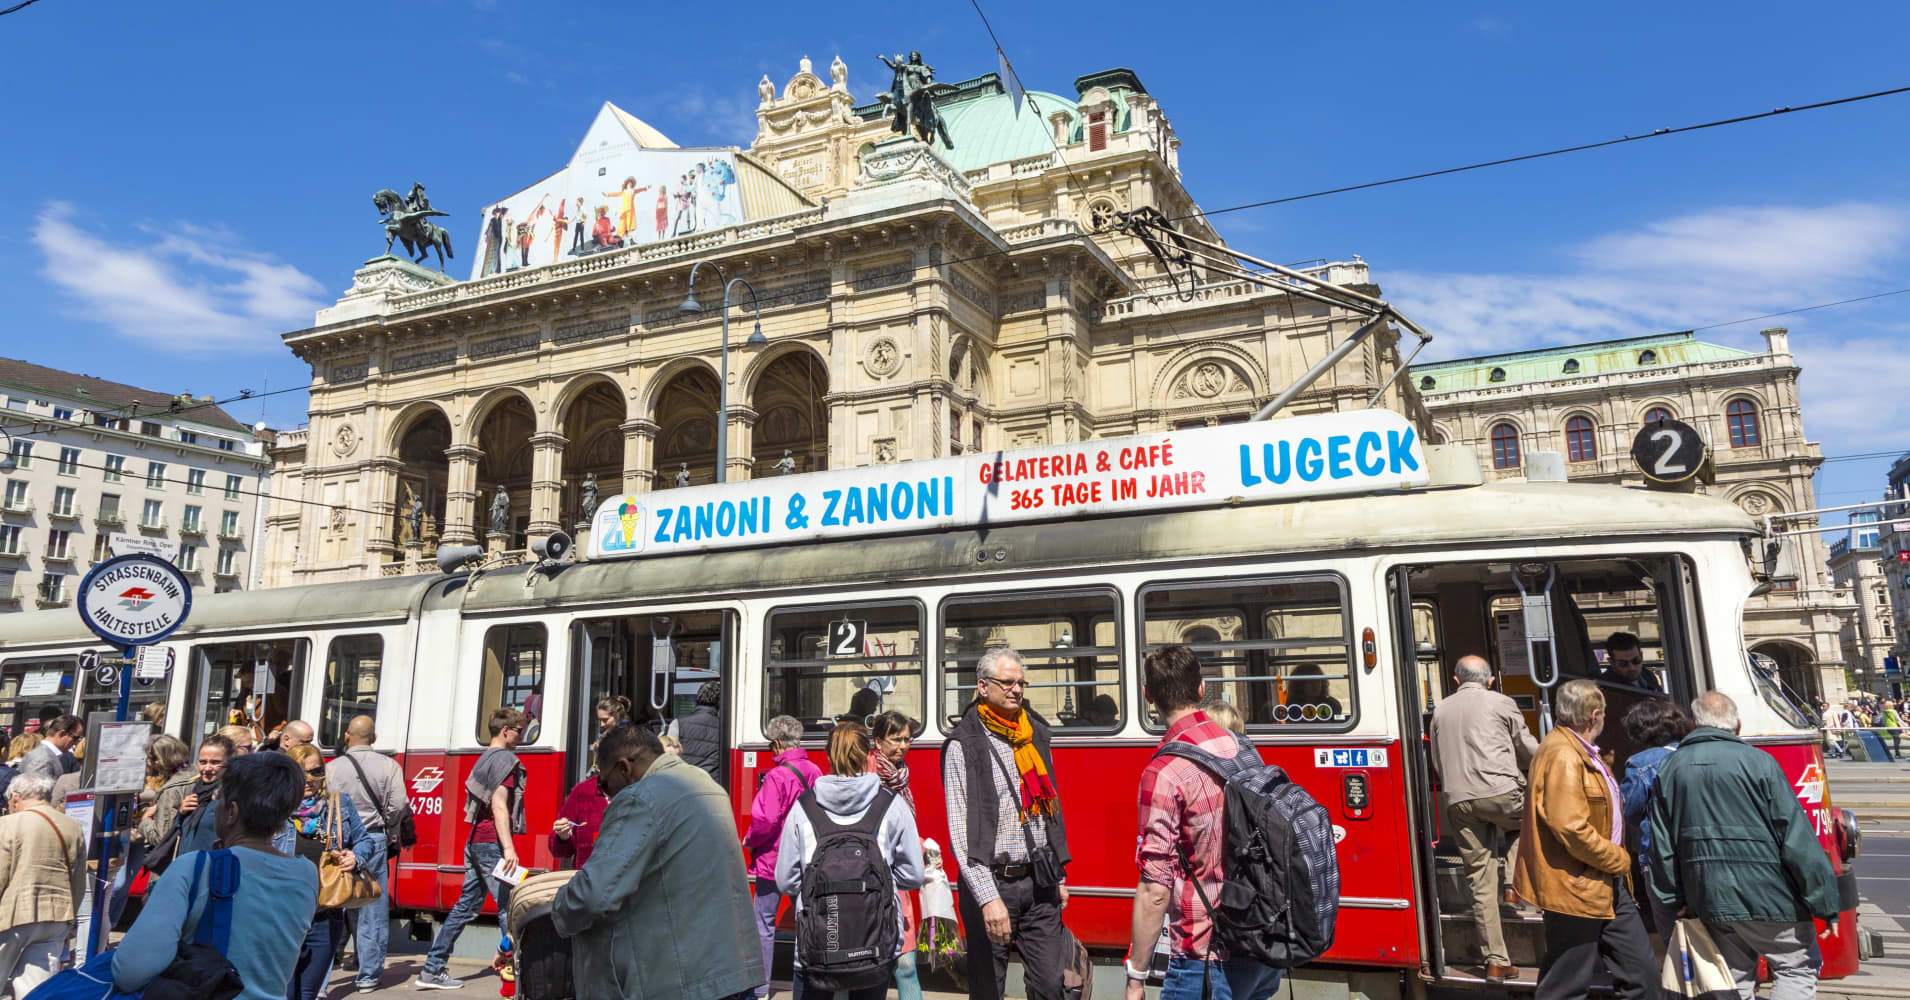 Vienna tops Melbourne as world's most liveable city: Economist survey